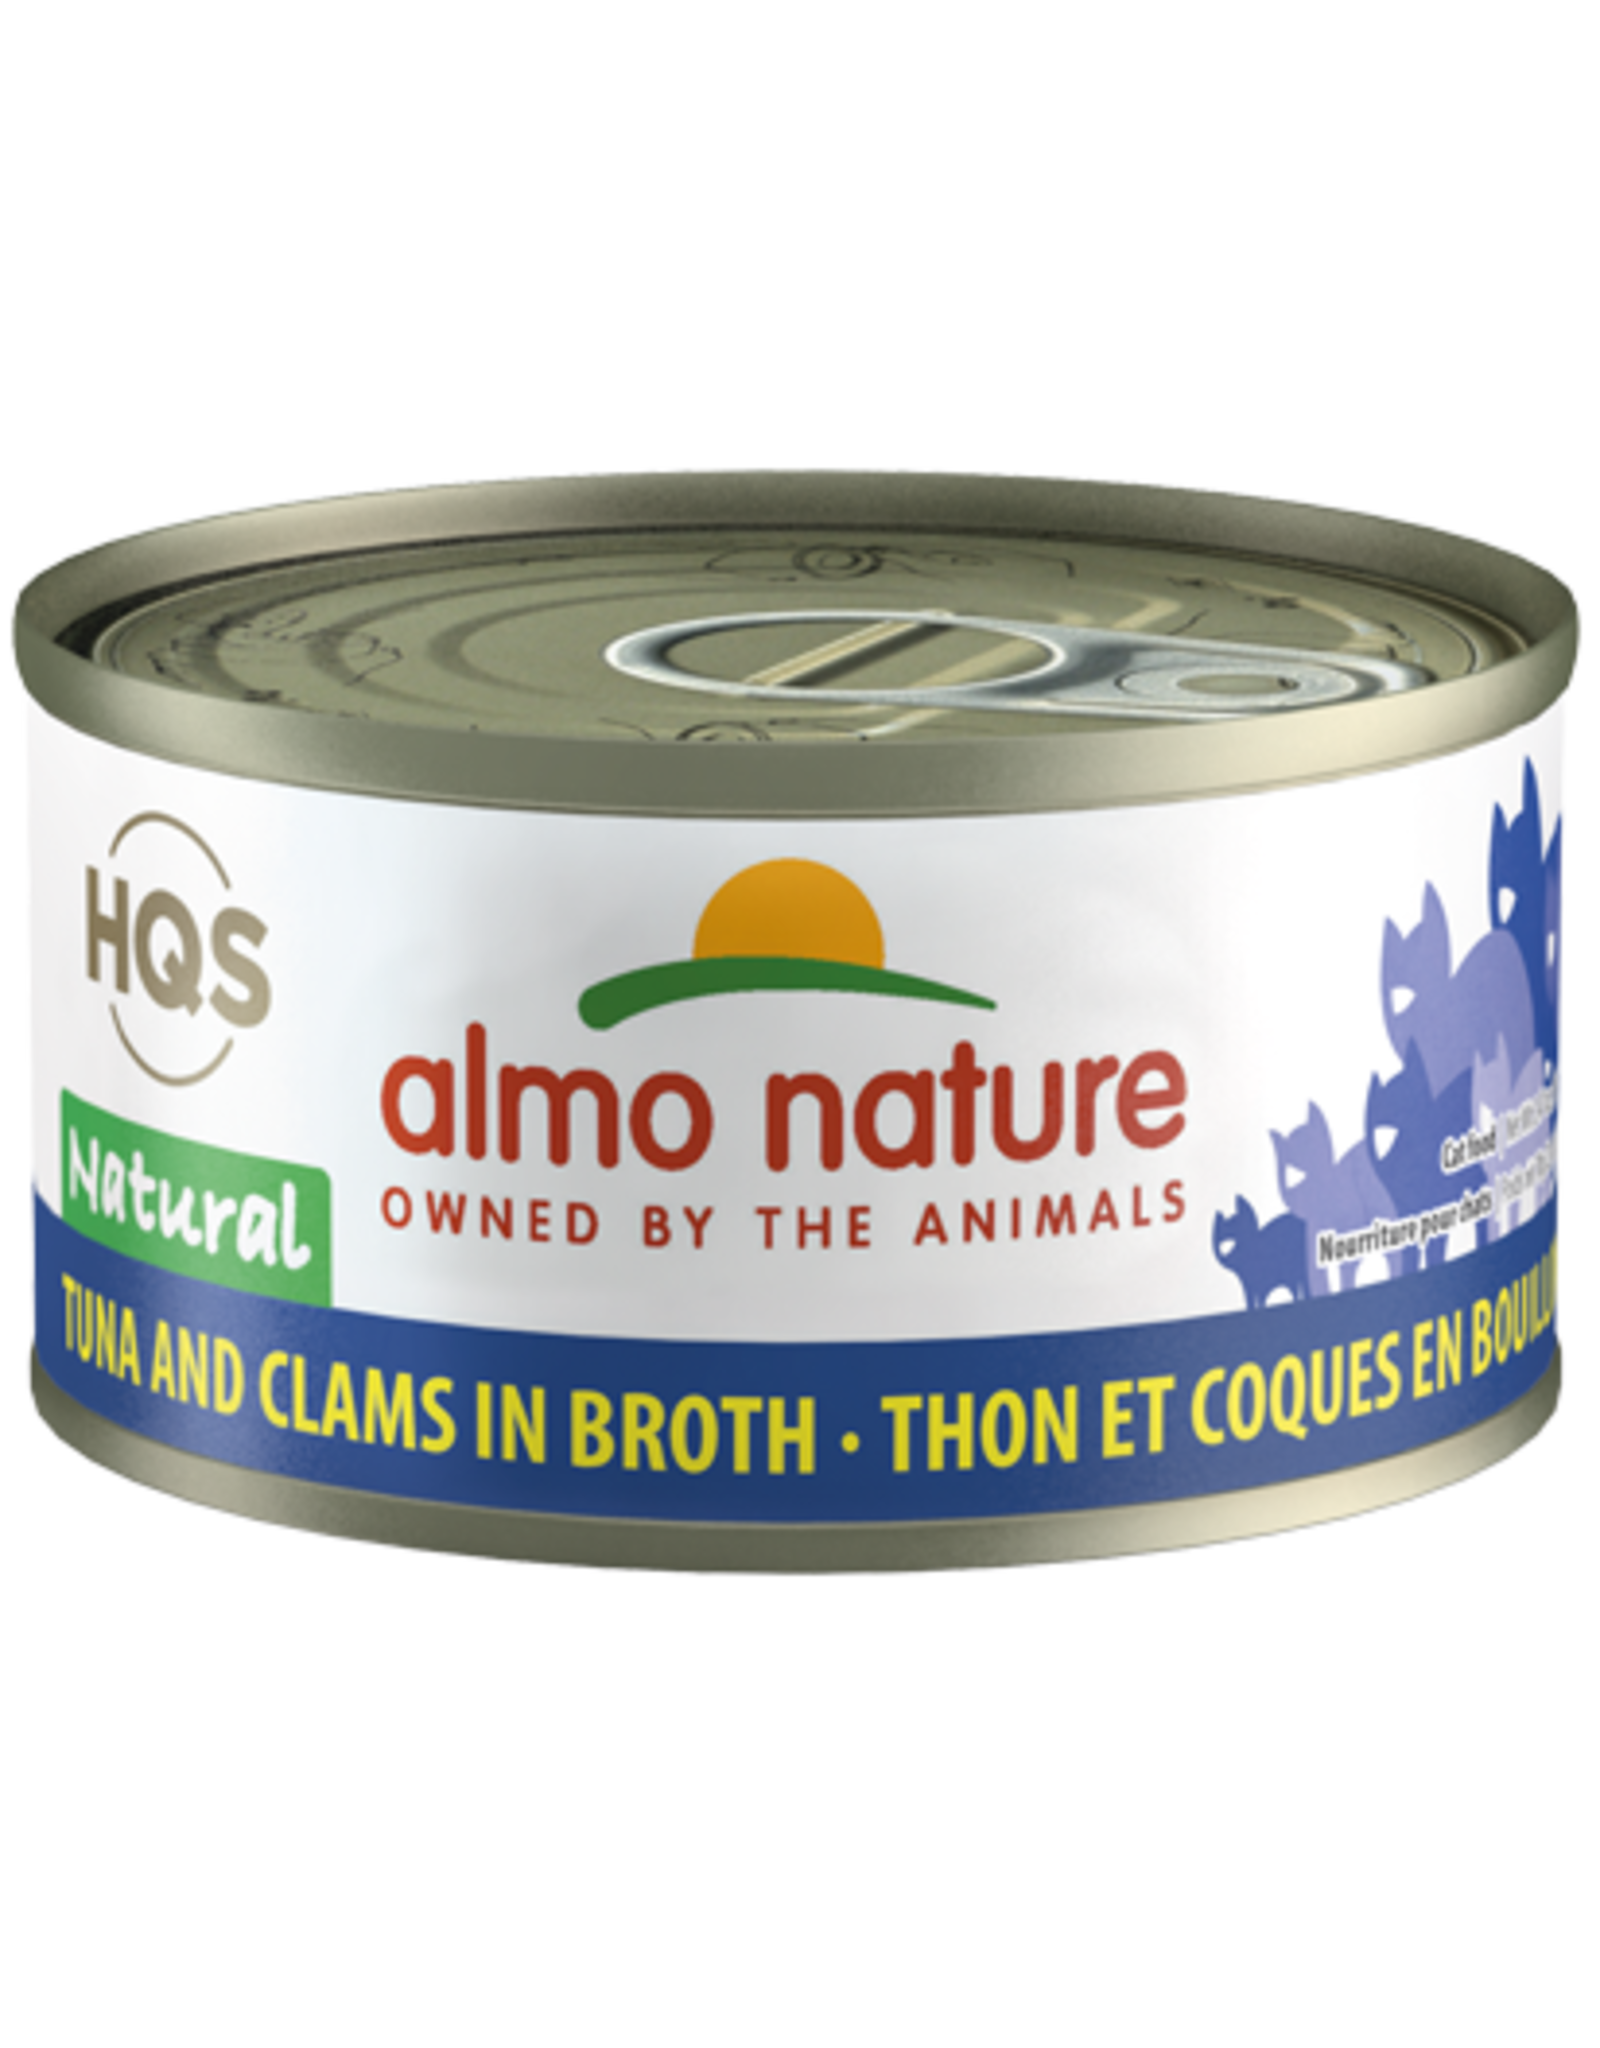 Almo Nature Almo Nature HQS Natural Wet Cat Food Tuna and Clams in Broth 2.47oz Can Grain Free